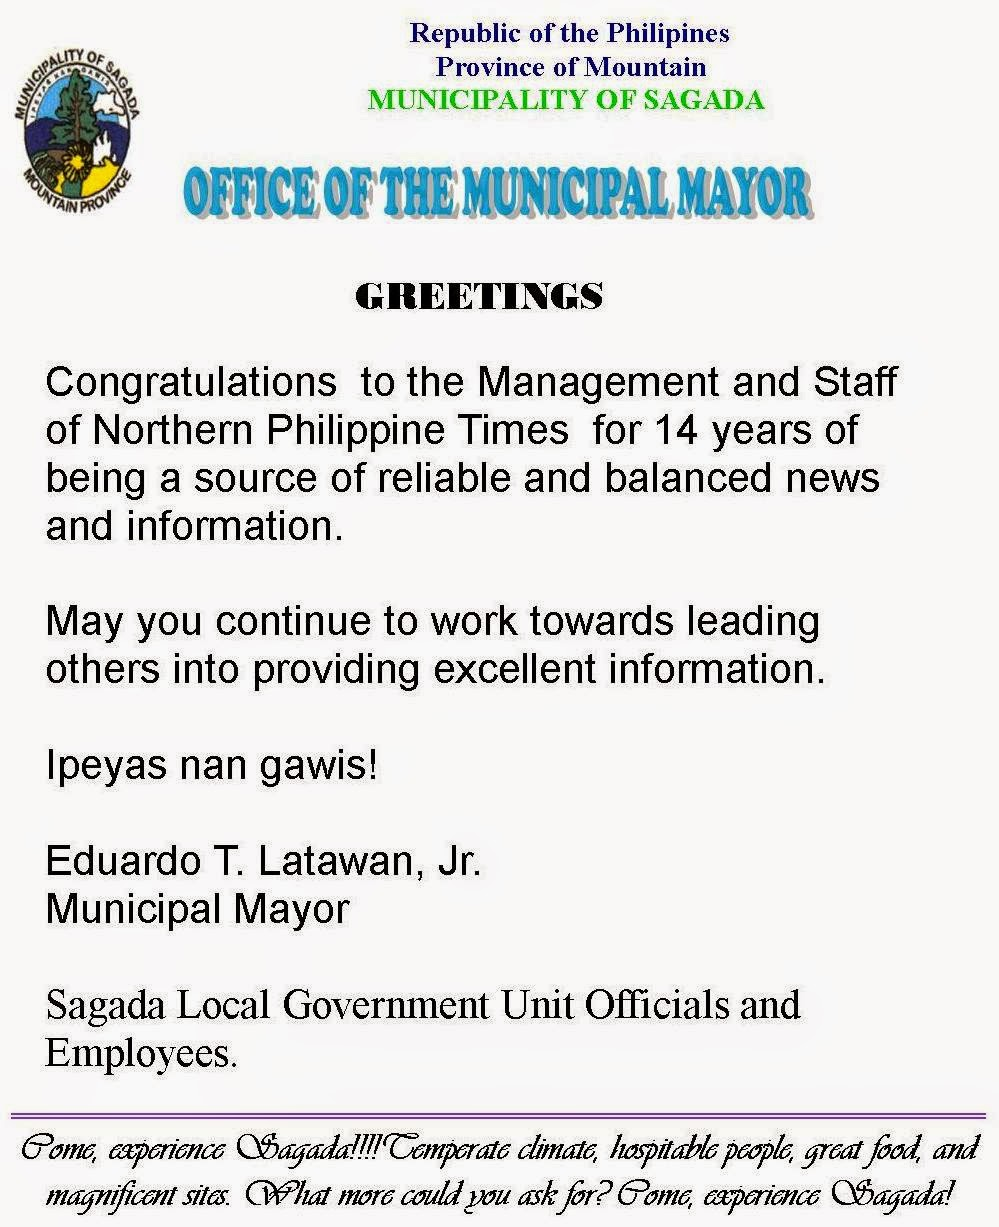 Sagada Mayor Latawan's message